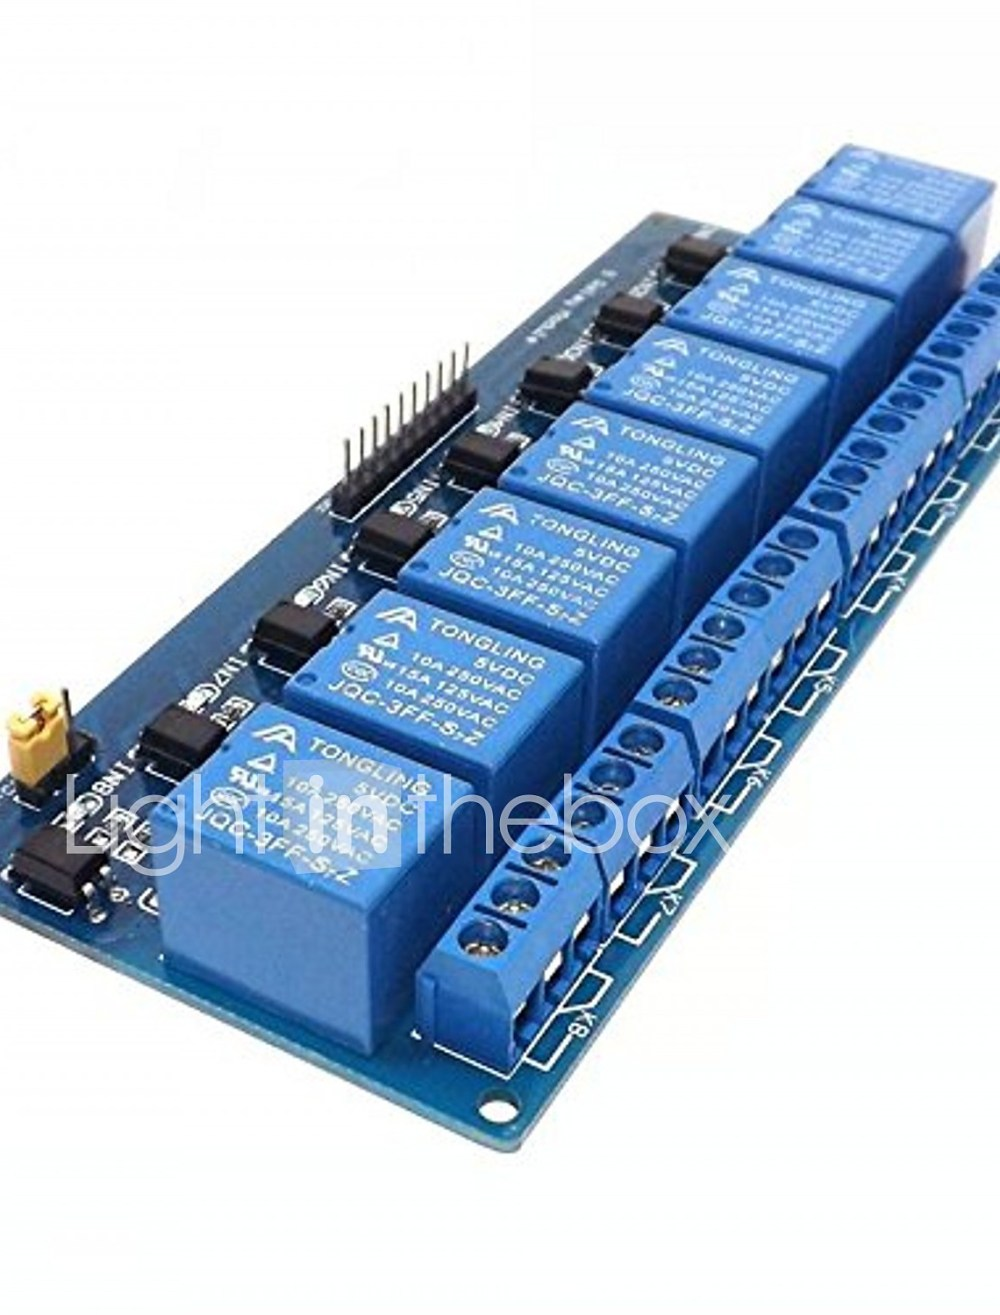 medium resolution of 8 channel 5v dc relay module expansion board for arduino raspberry pi dsp avr pic arm 07010660